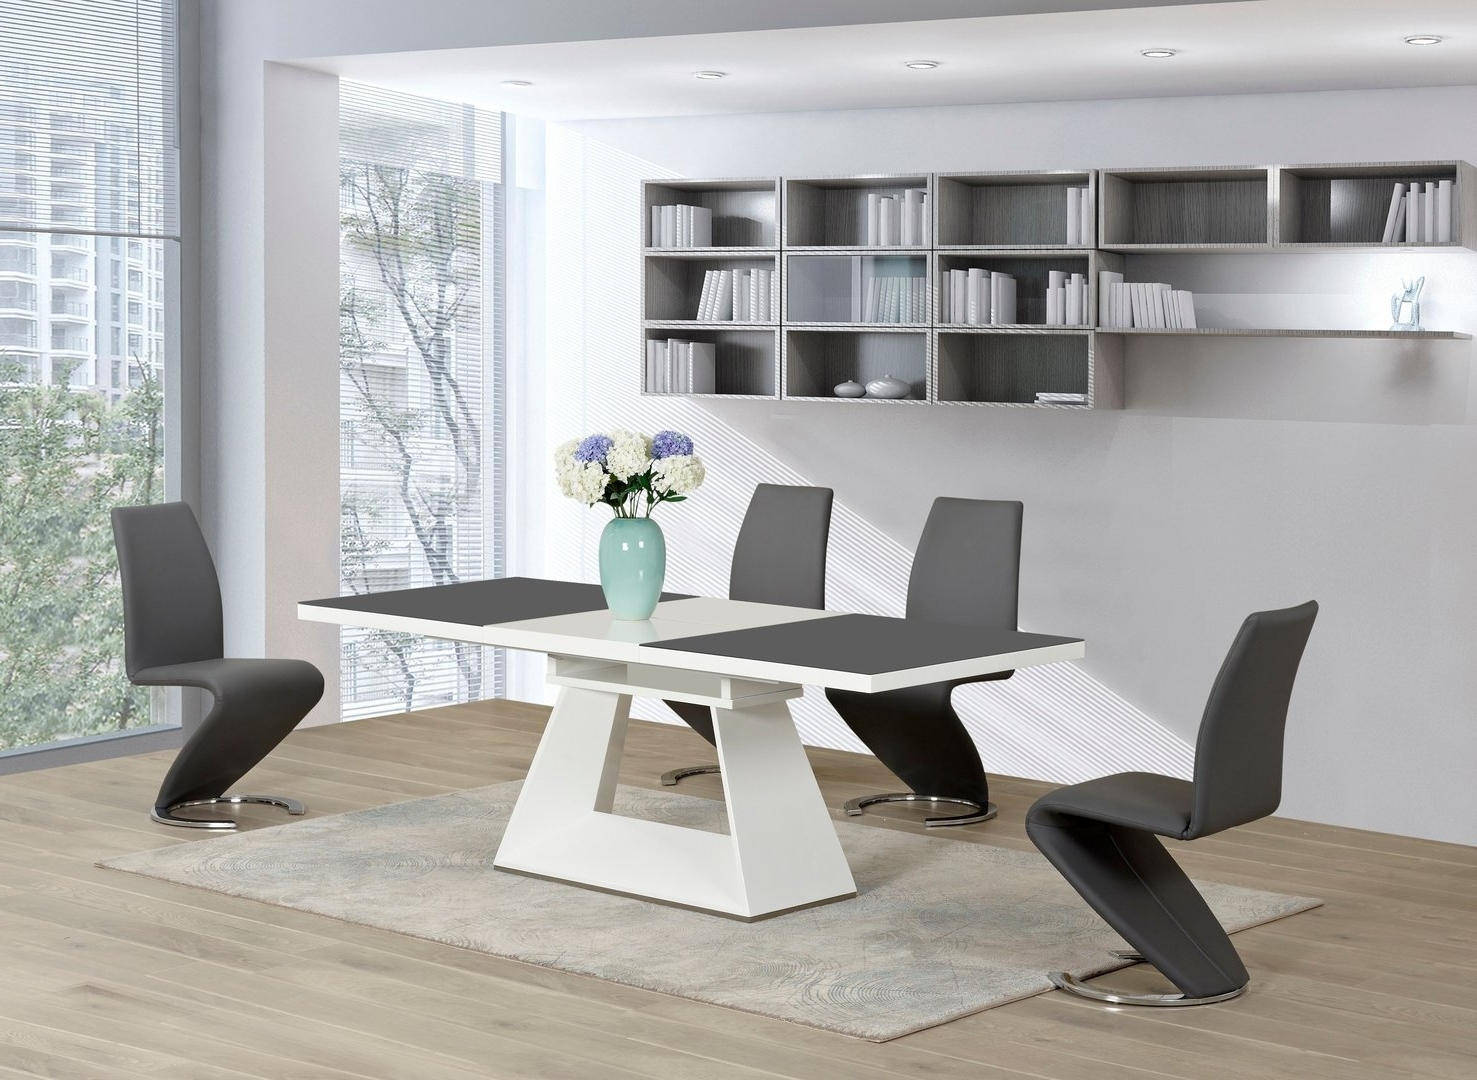 Oval Seats Round Super Square Chairs And Table Argos Oak White Throughout Popular Square Extendable Dining Tables And Chairs (View 17 of 25)